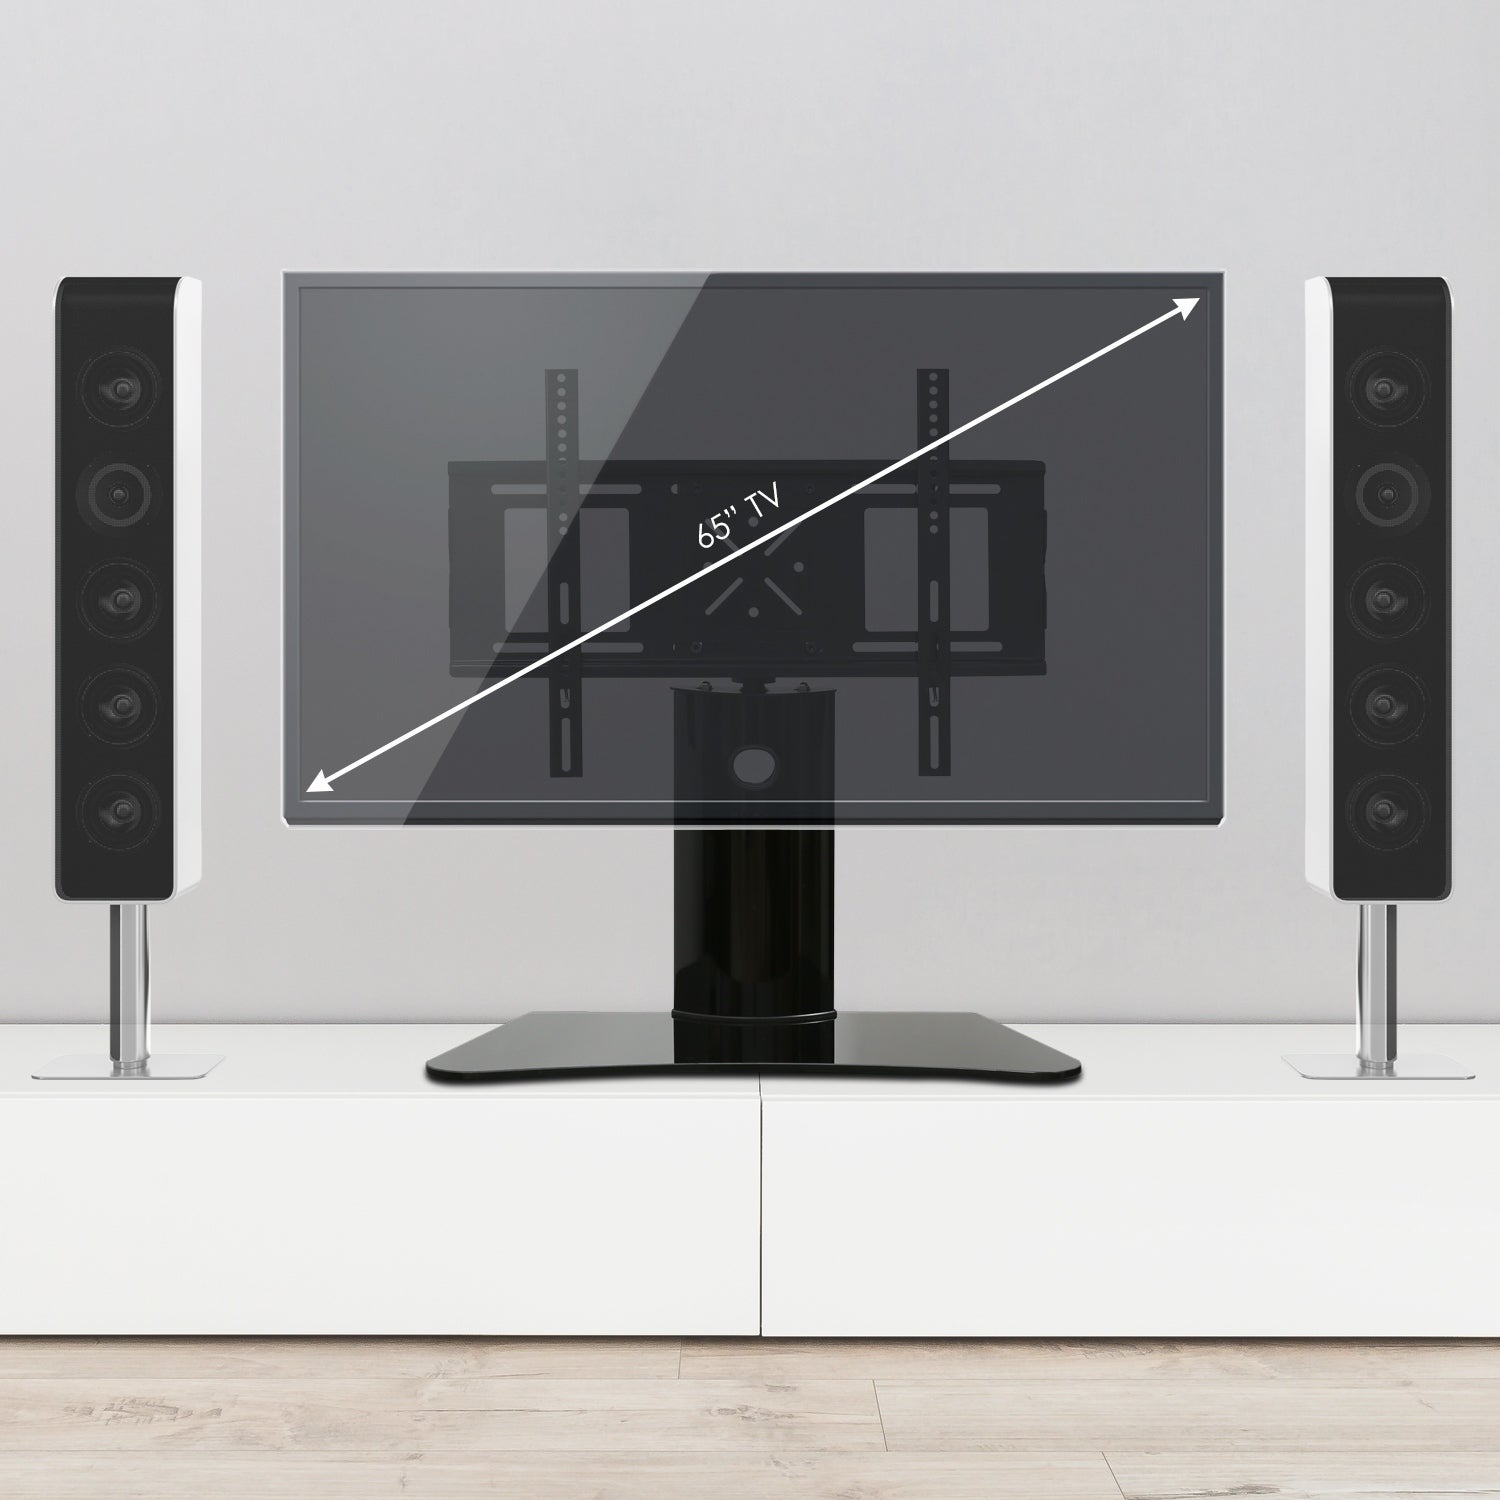 Shop Furinno Modern Tv Stand With Wall Mount Bracket For Tv Up To 65